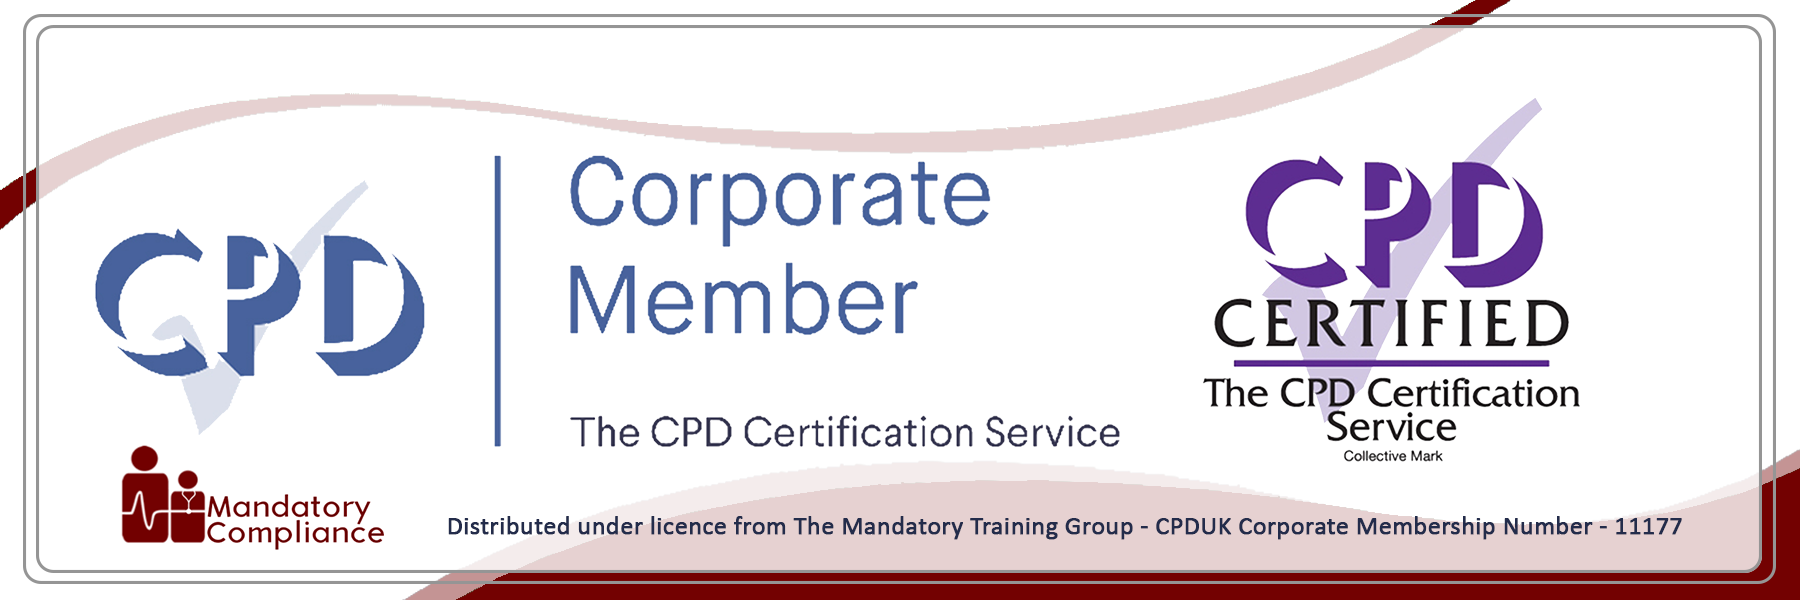 Meeting Management Training - Online Training Course - CPD Accredited - Mandatory Compliance UK -